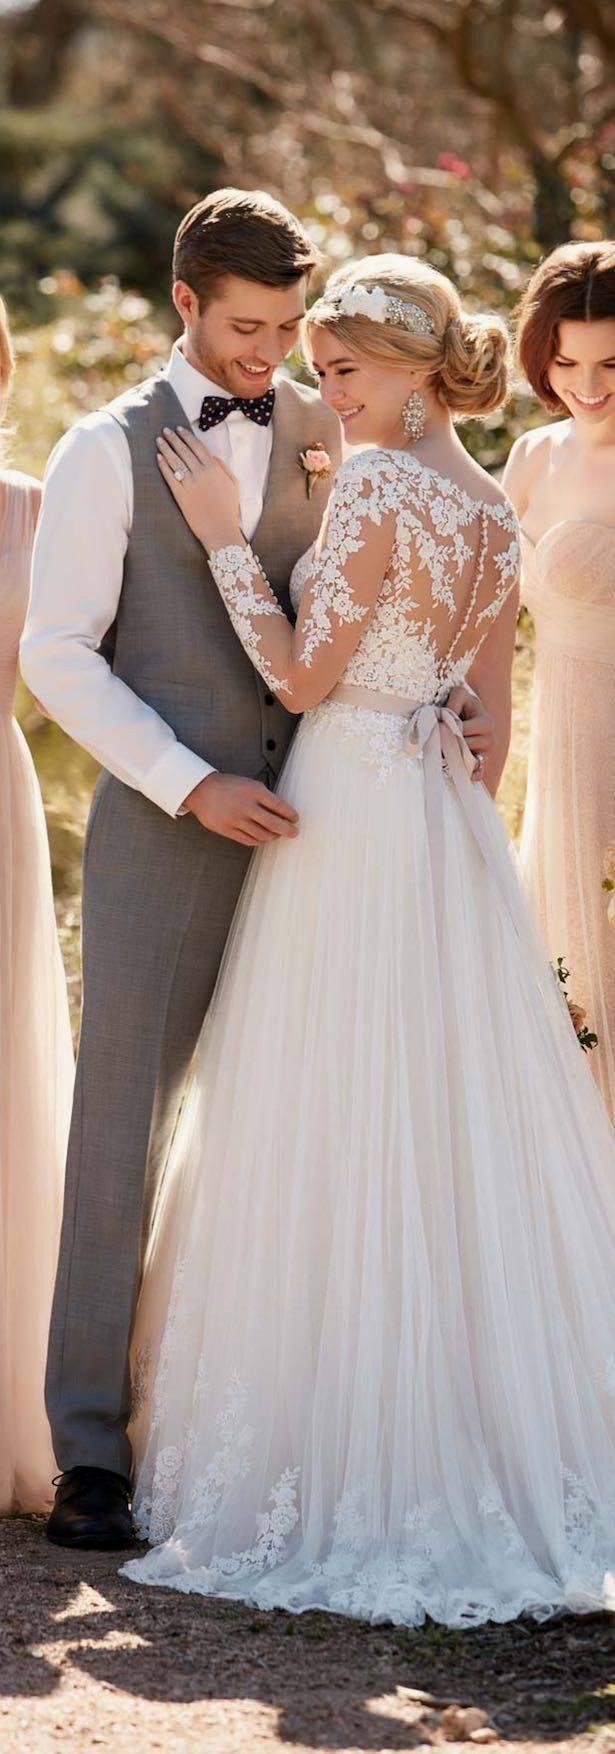 Lace button up wedding dress november 2018 Lace wedding dress Ignore the bridegroom for the moment lets